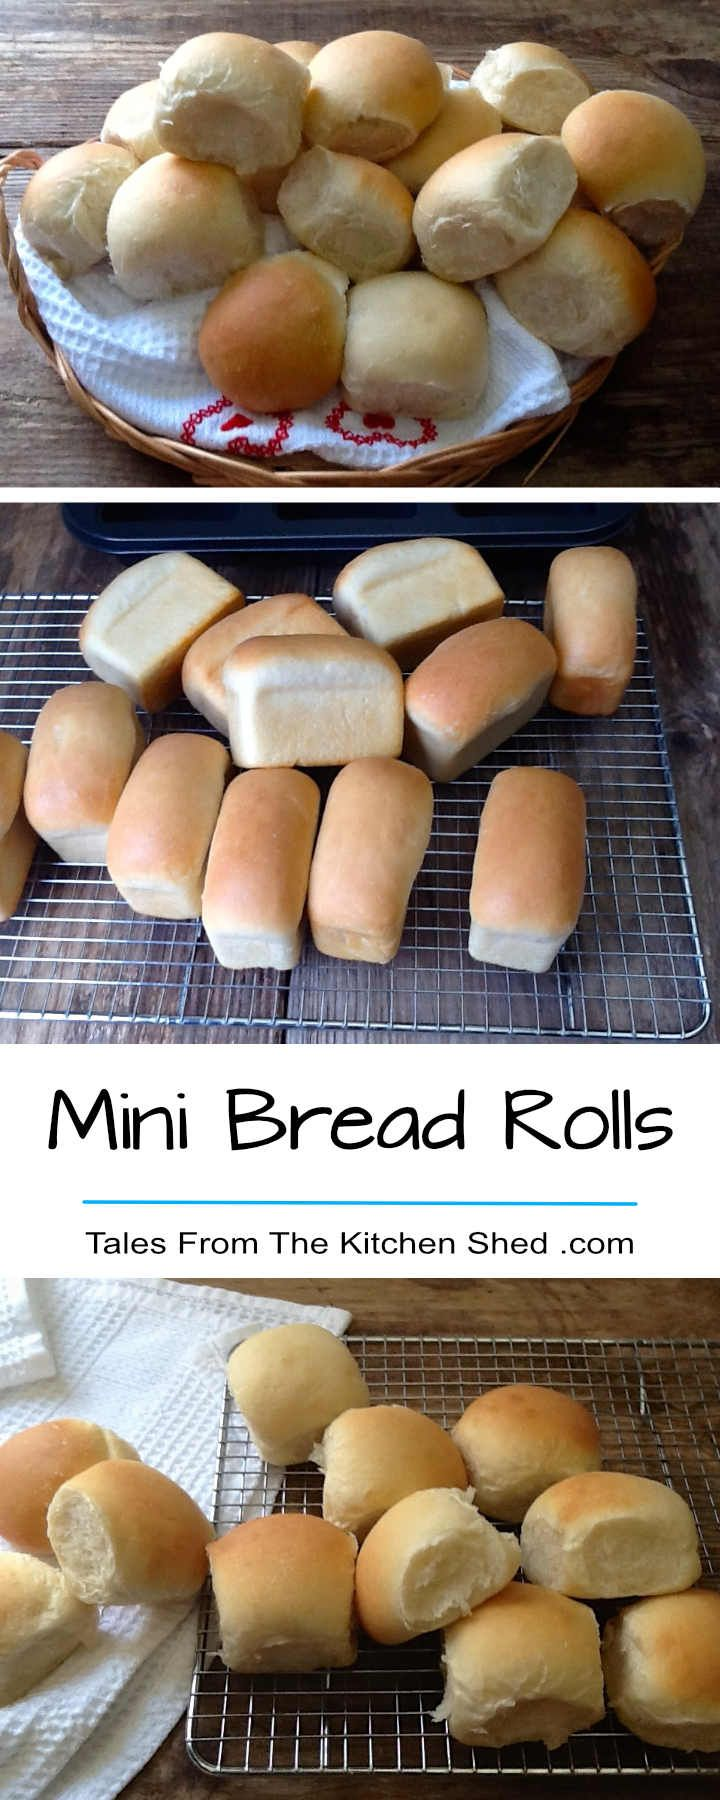 Mini Bread Rolls - you can't beat a basket of homemade rolls! The perfect size for dinner rolls, sliders, canapés & packed lunches.